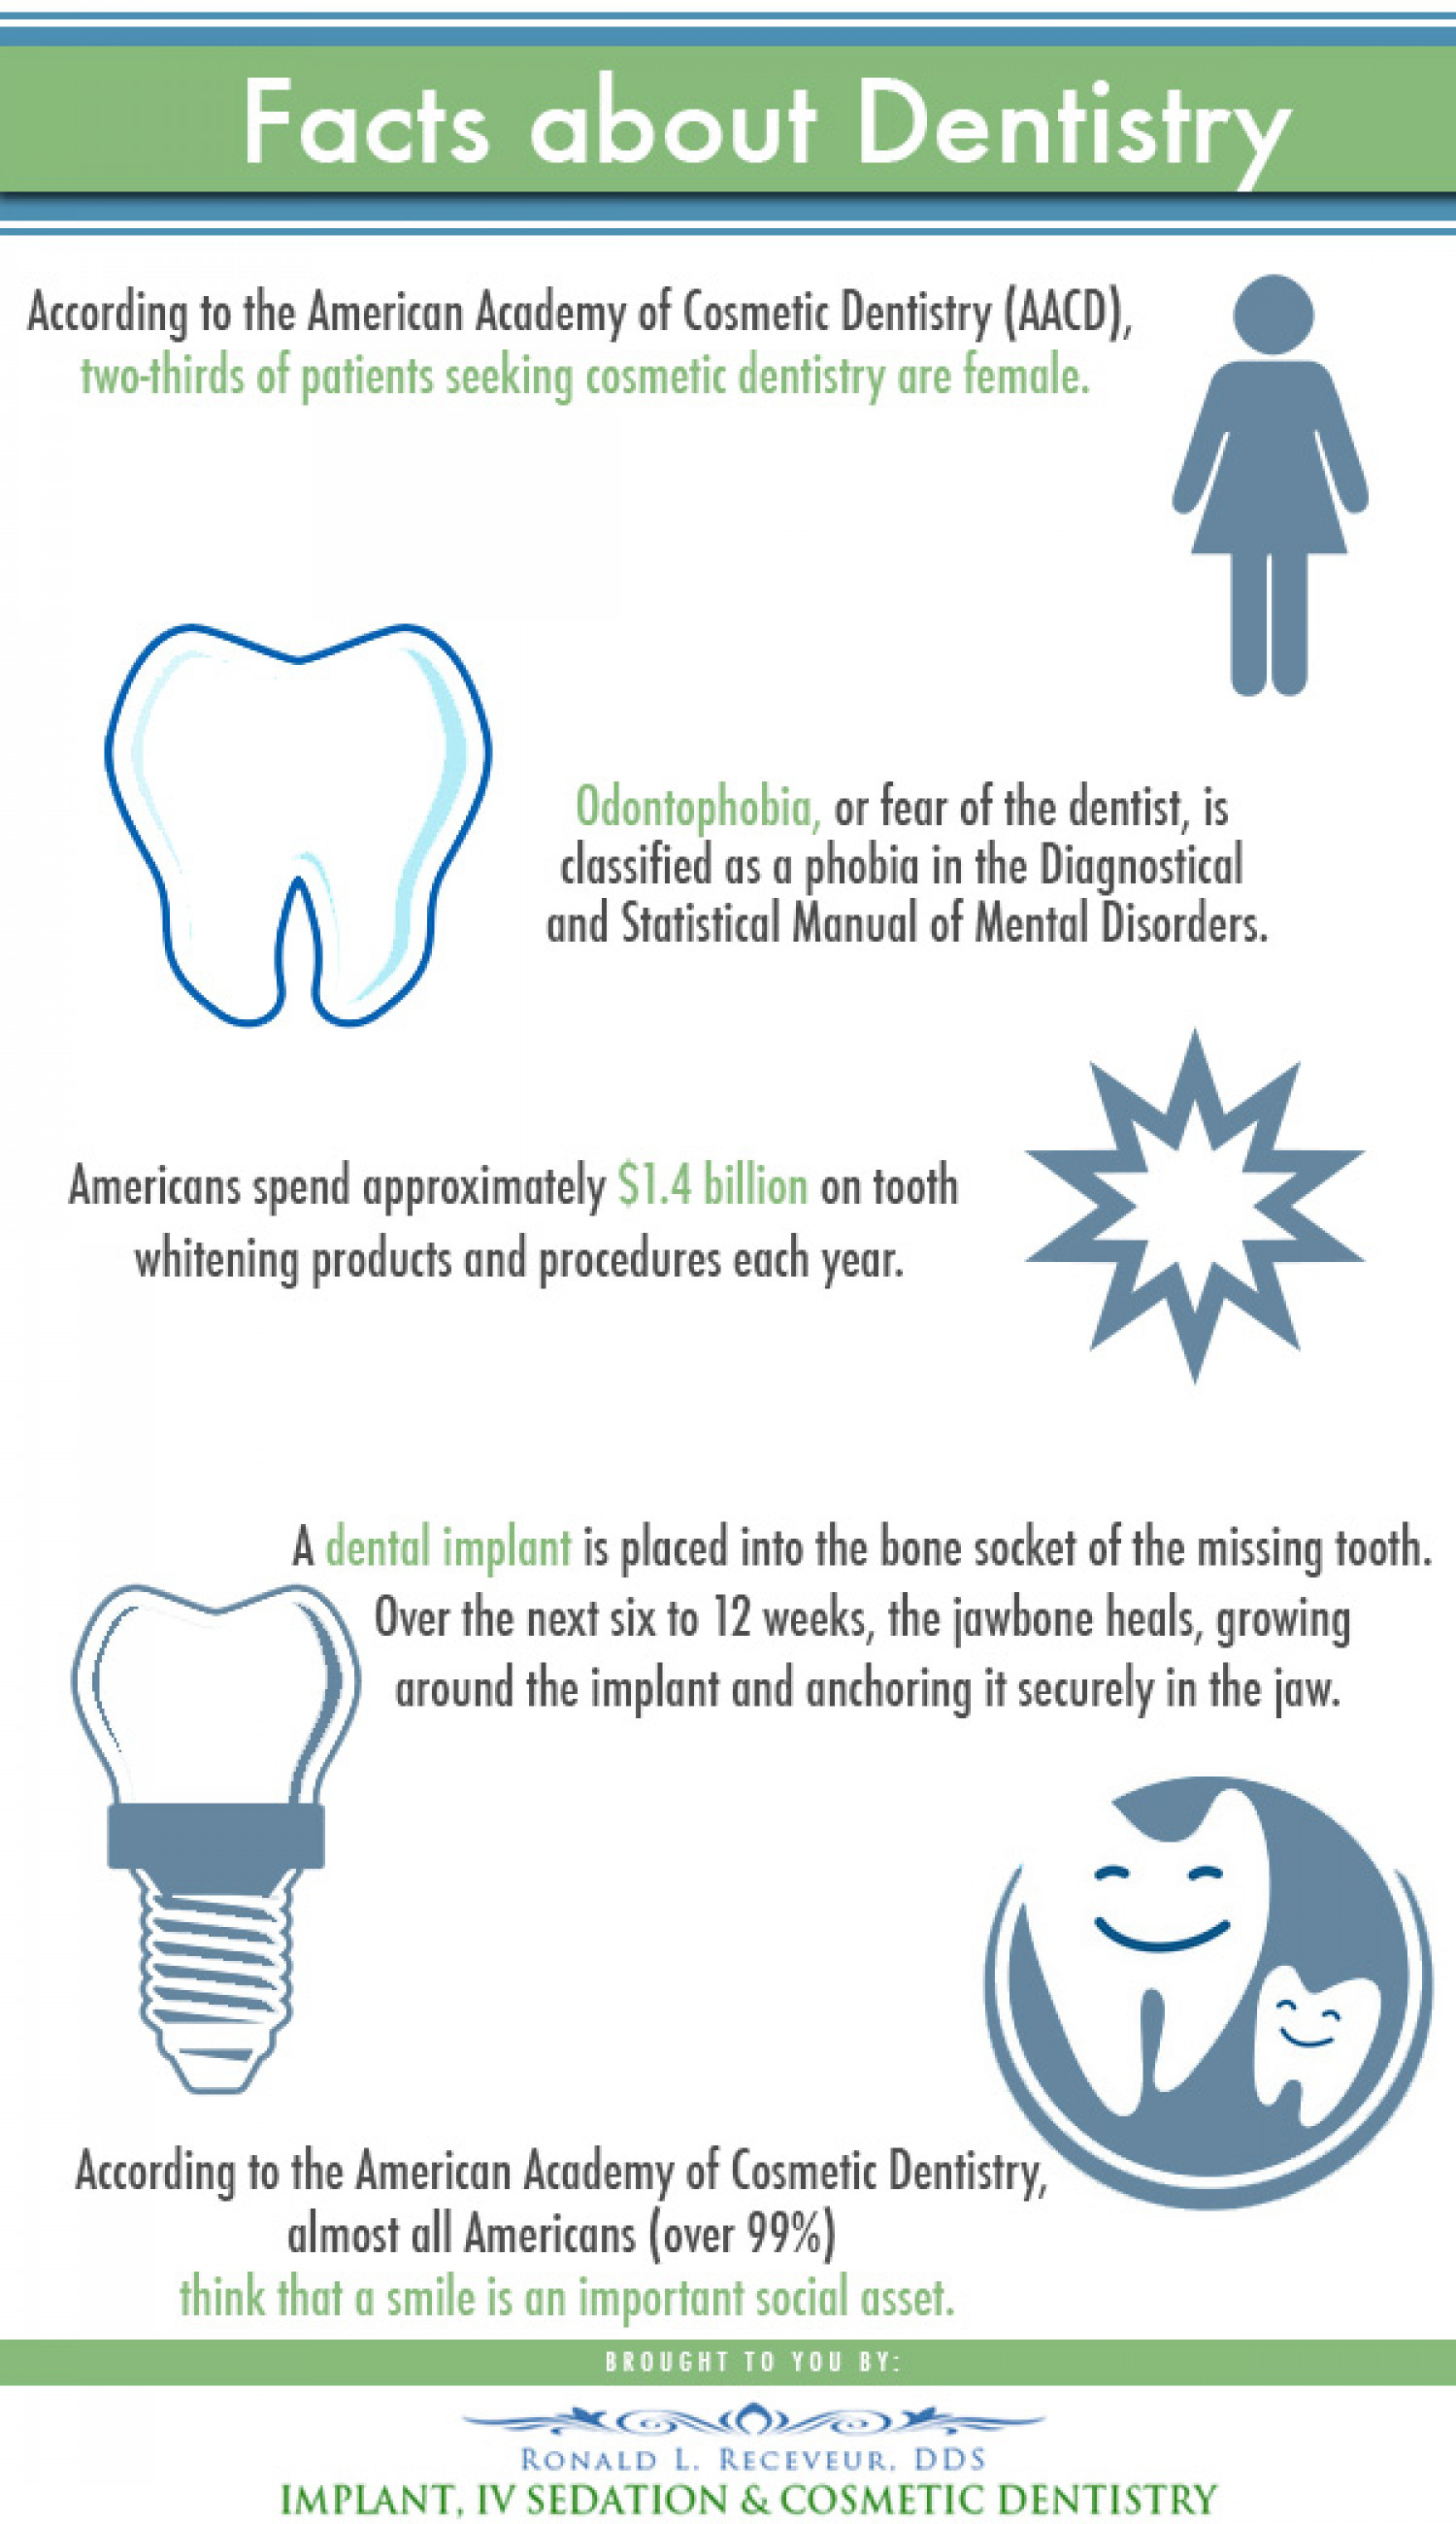 Facts About Dentistry Infographic